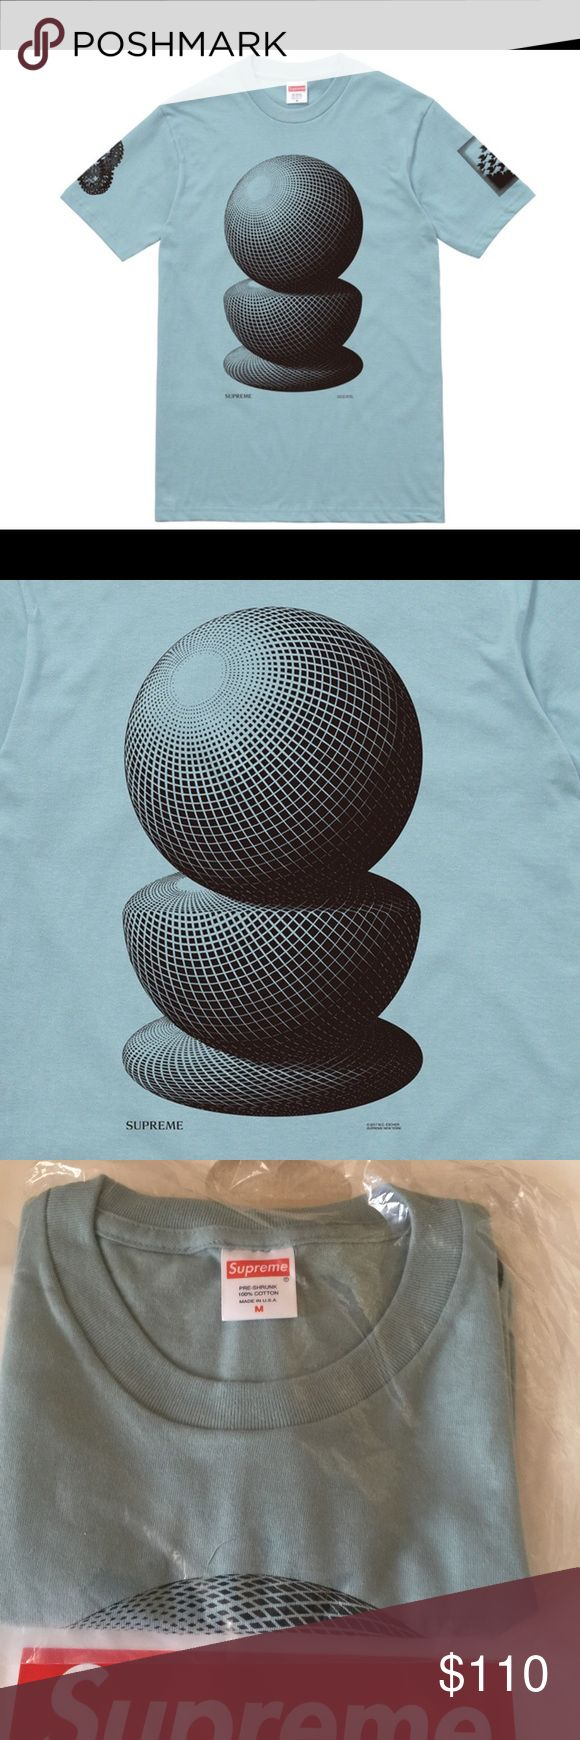 Supreme M.C. Escher T-Shirt Tee 3 Spheres Medium M Brand New -- M.C. / MC Escher Tee Three / 3 Spheres Size - Medium / M Color - Slate Blue / In hand & Ready to ship. -- Deadstock  and still in original packaging received from Supreme online store. Comes from a clean & smoke free home. Thanks for shopping and if you have any questions please don't hesitate to ask! 🚫NO TRADES 🚫NO Transactions Outside of Poshmark ... Thank you Tags: Box Logo Bogo Supreme Shirts Tees - Short Sleeve